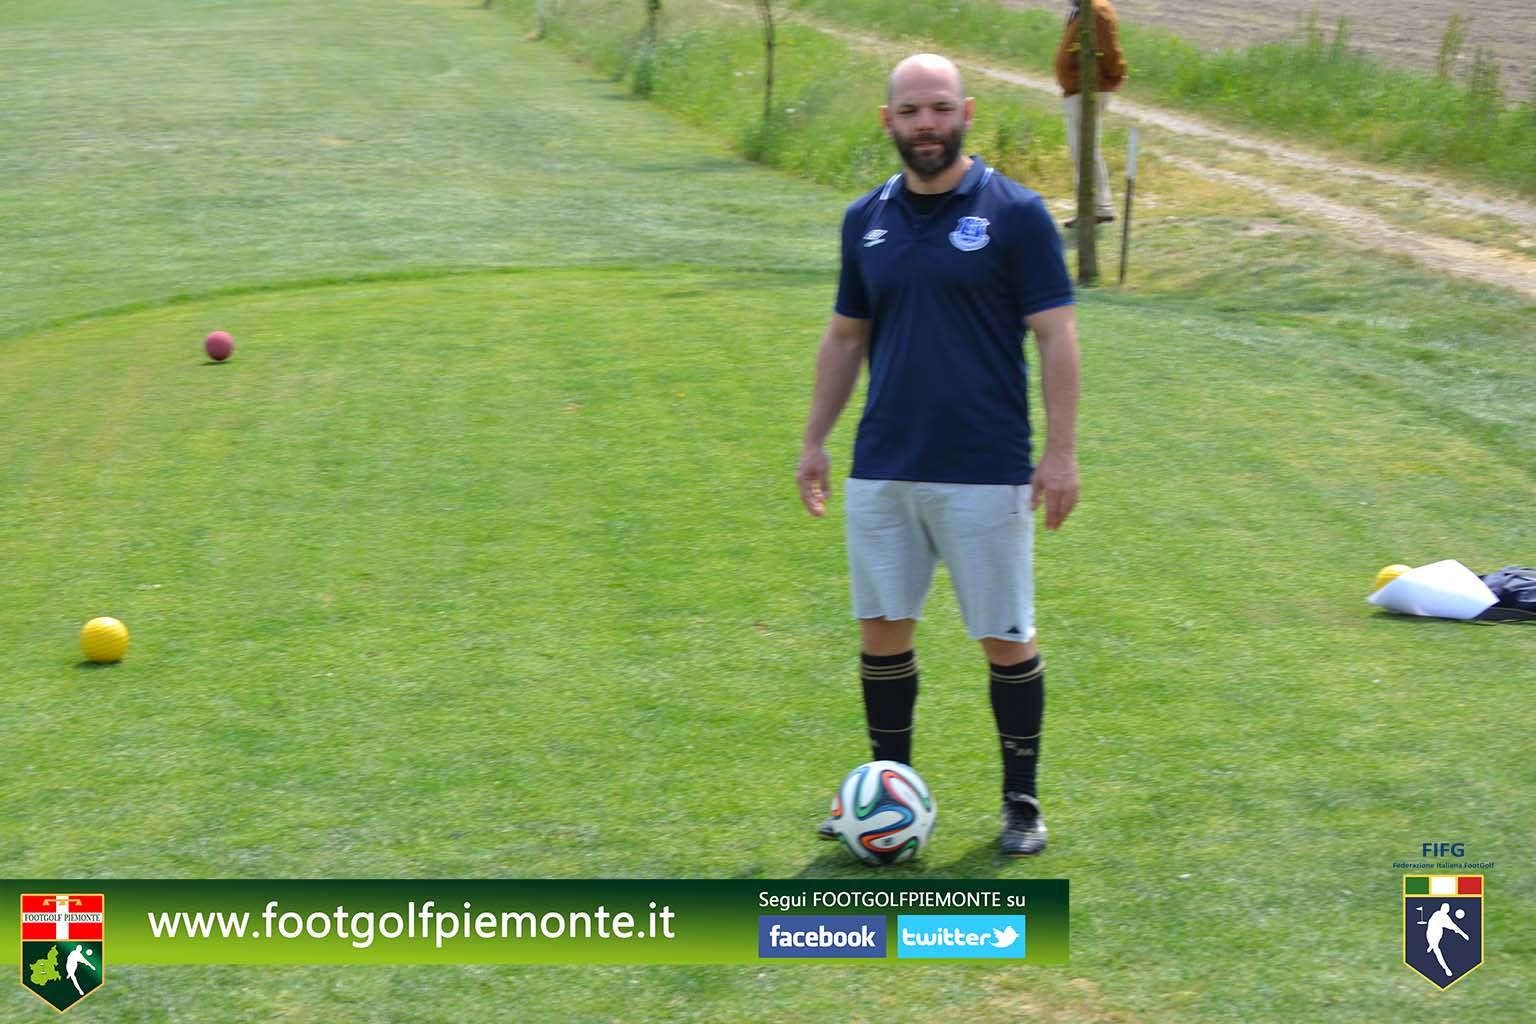 FOTO 9 Regions' Cup Footgolf Piemonte 2016 Golf Città di Asti (At) 30apr16-32